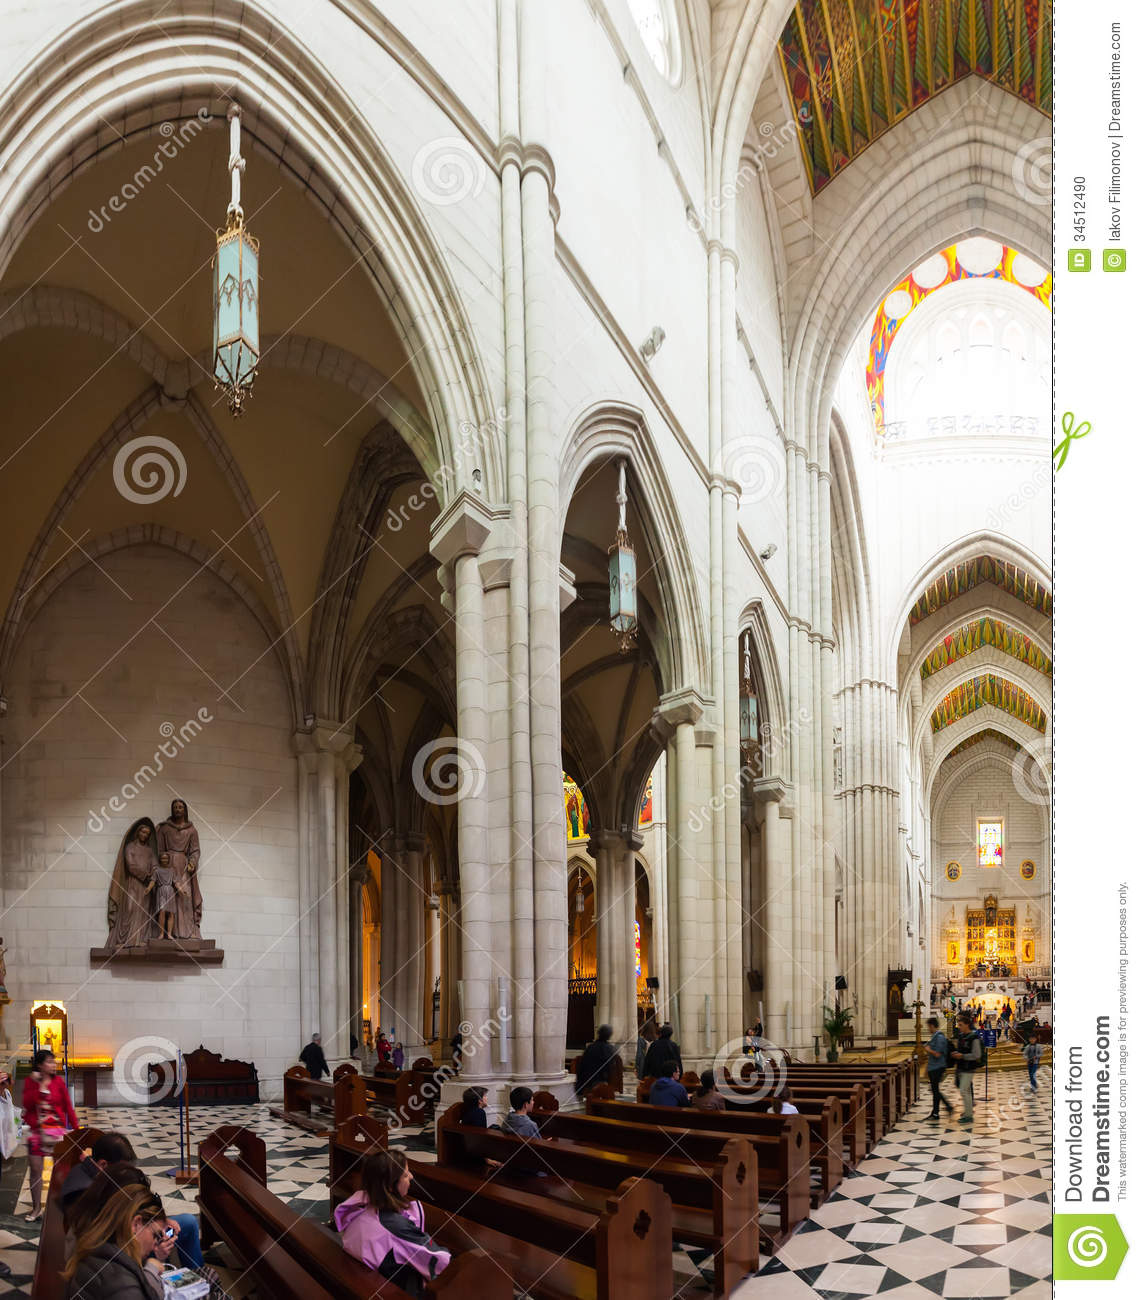 La Almudena Cathedral Main Church Of Spain Editorial Image Image Of Europe Inside 34512490